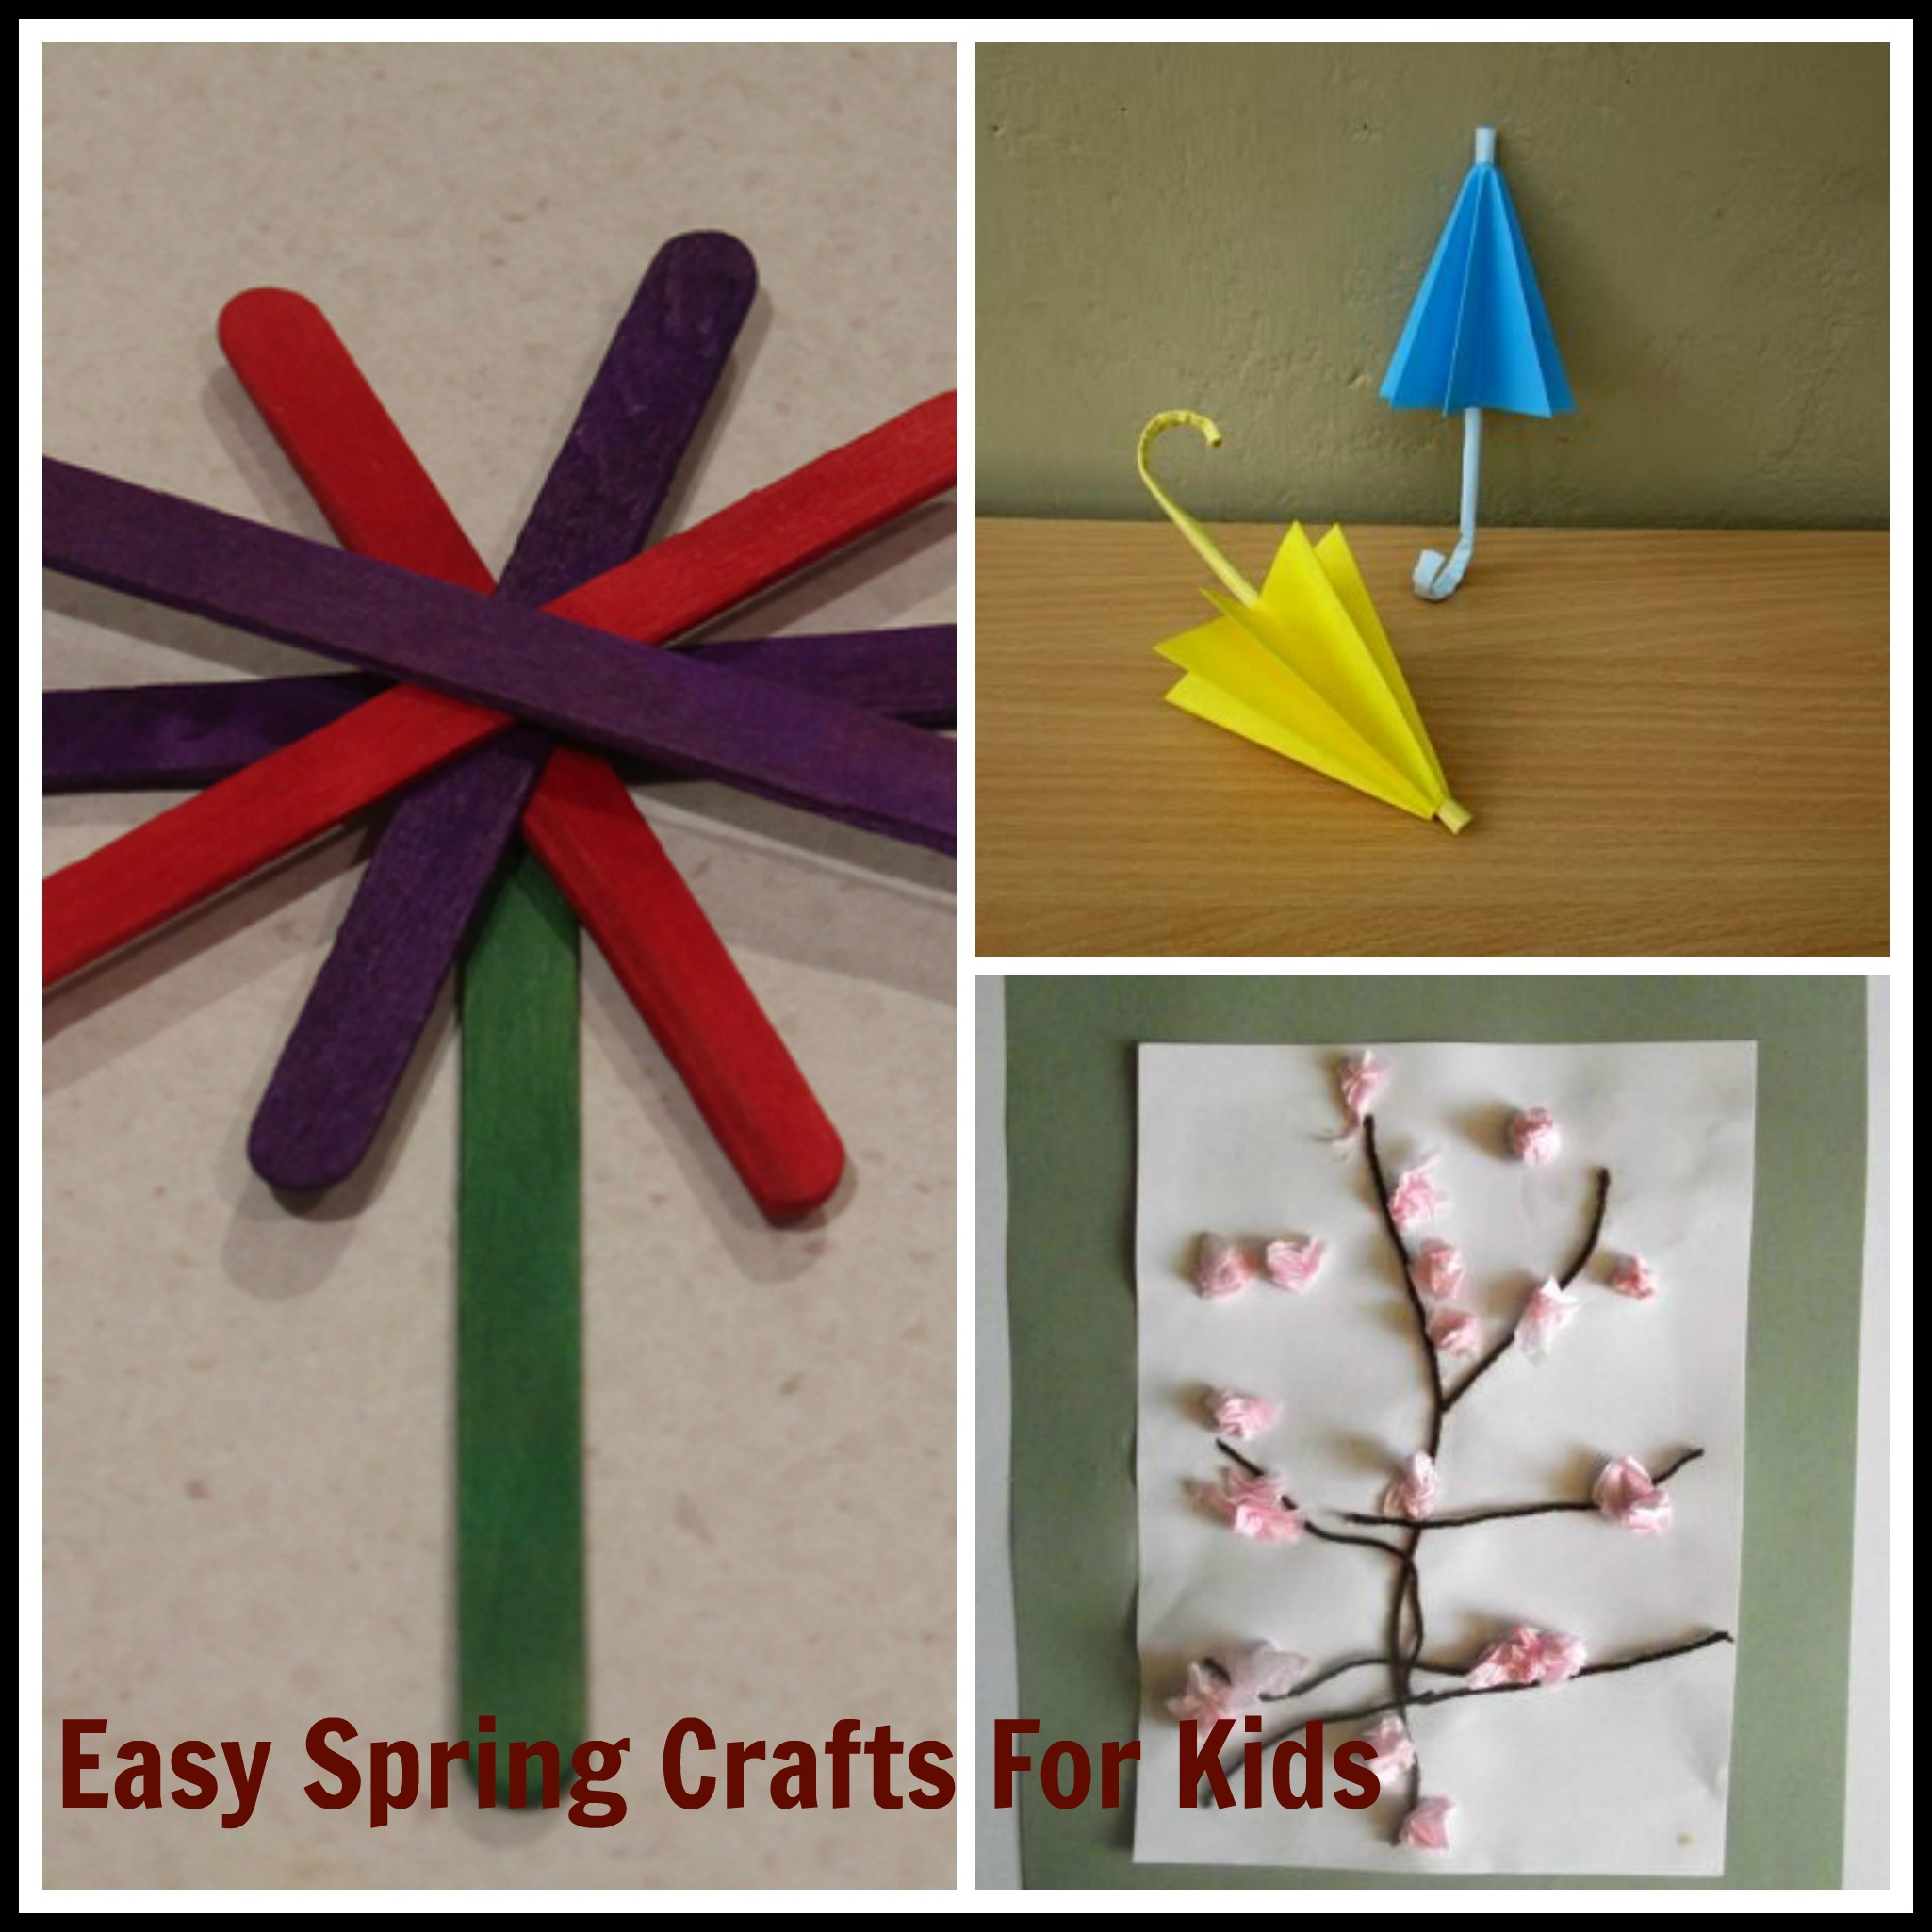 Easy Craft Ideas For Kids With Paper Part - 44: Easy Spring Craft Ideas For Kids